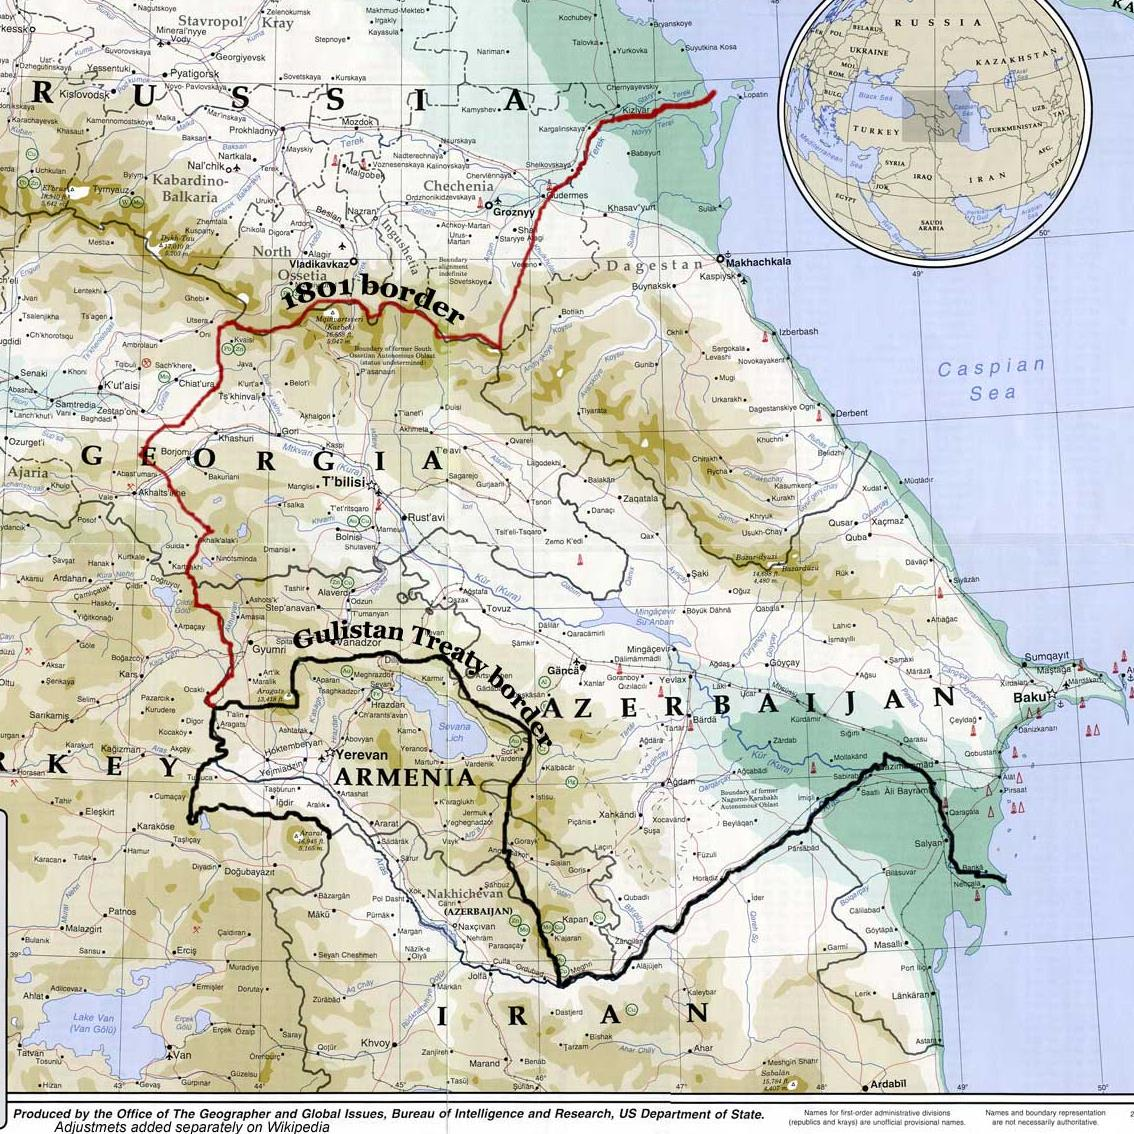 International Conference Centenary of the first period of the independence in republics of Caucasian  (1921-1918) (Caucasus Azerbaijan, Armenia and Georgia)